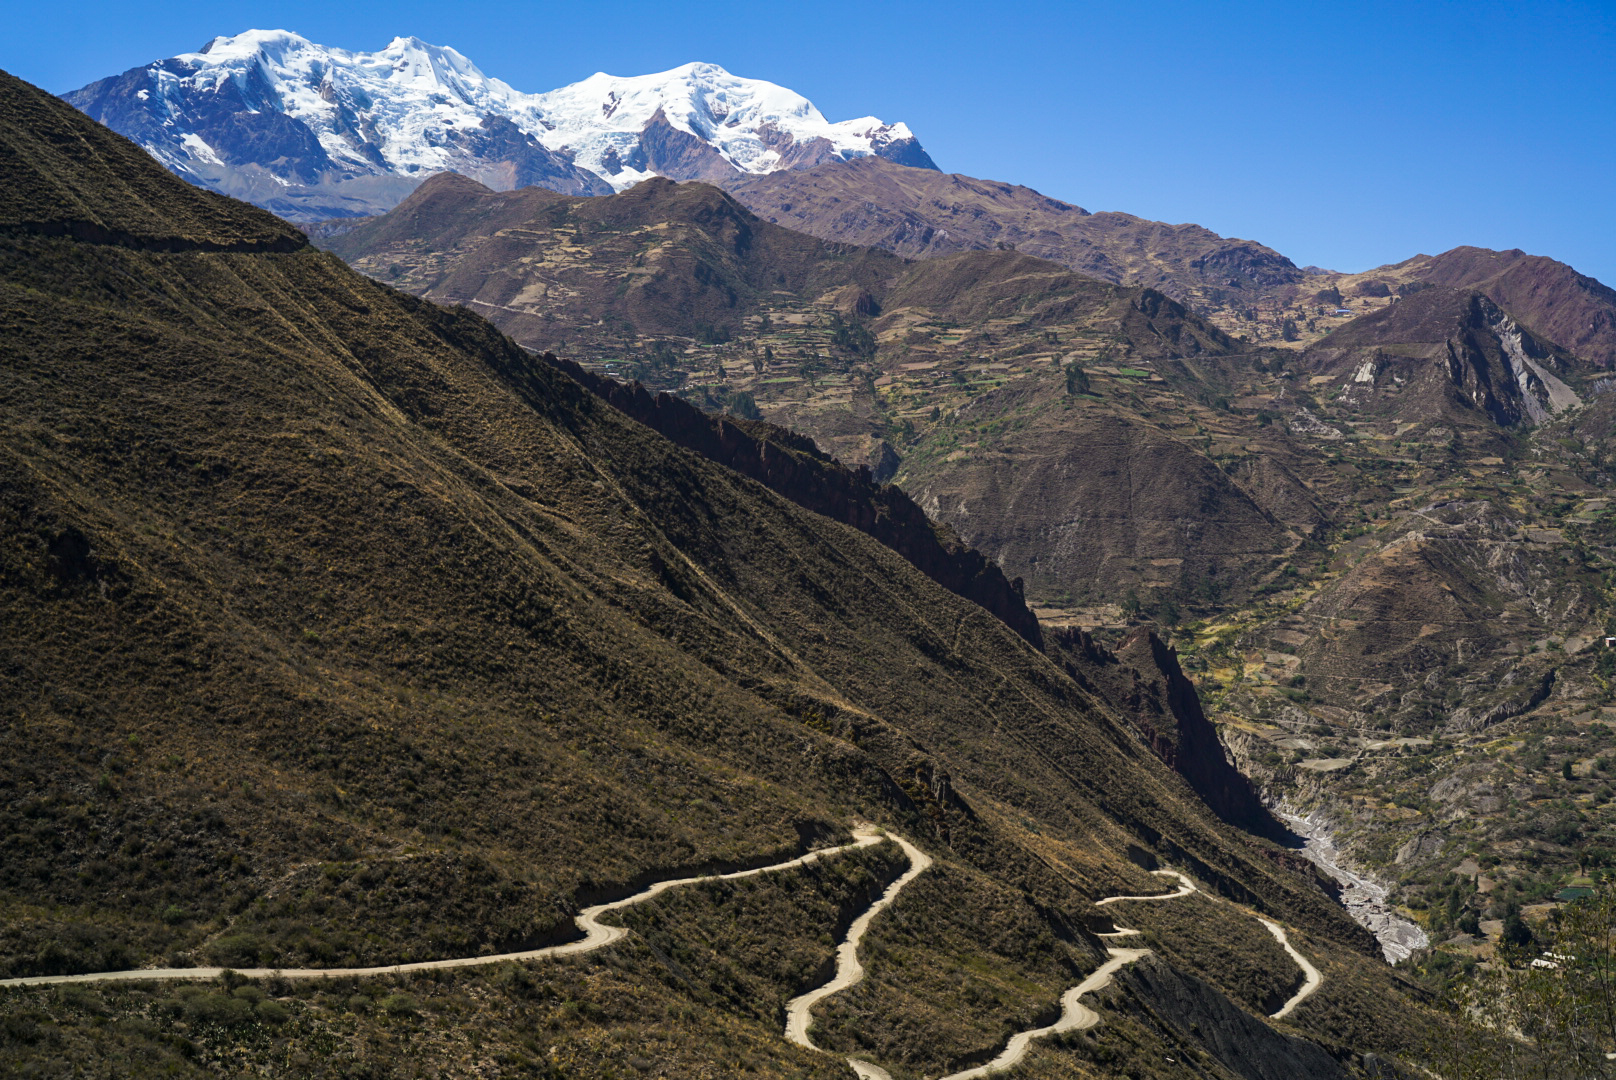 Road to Illimani with the mountain in the distance (Harry Hamlin)